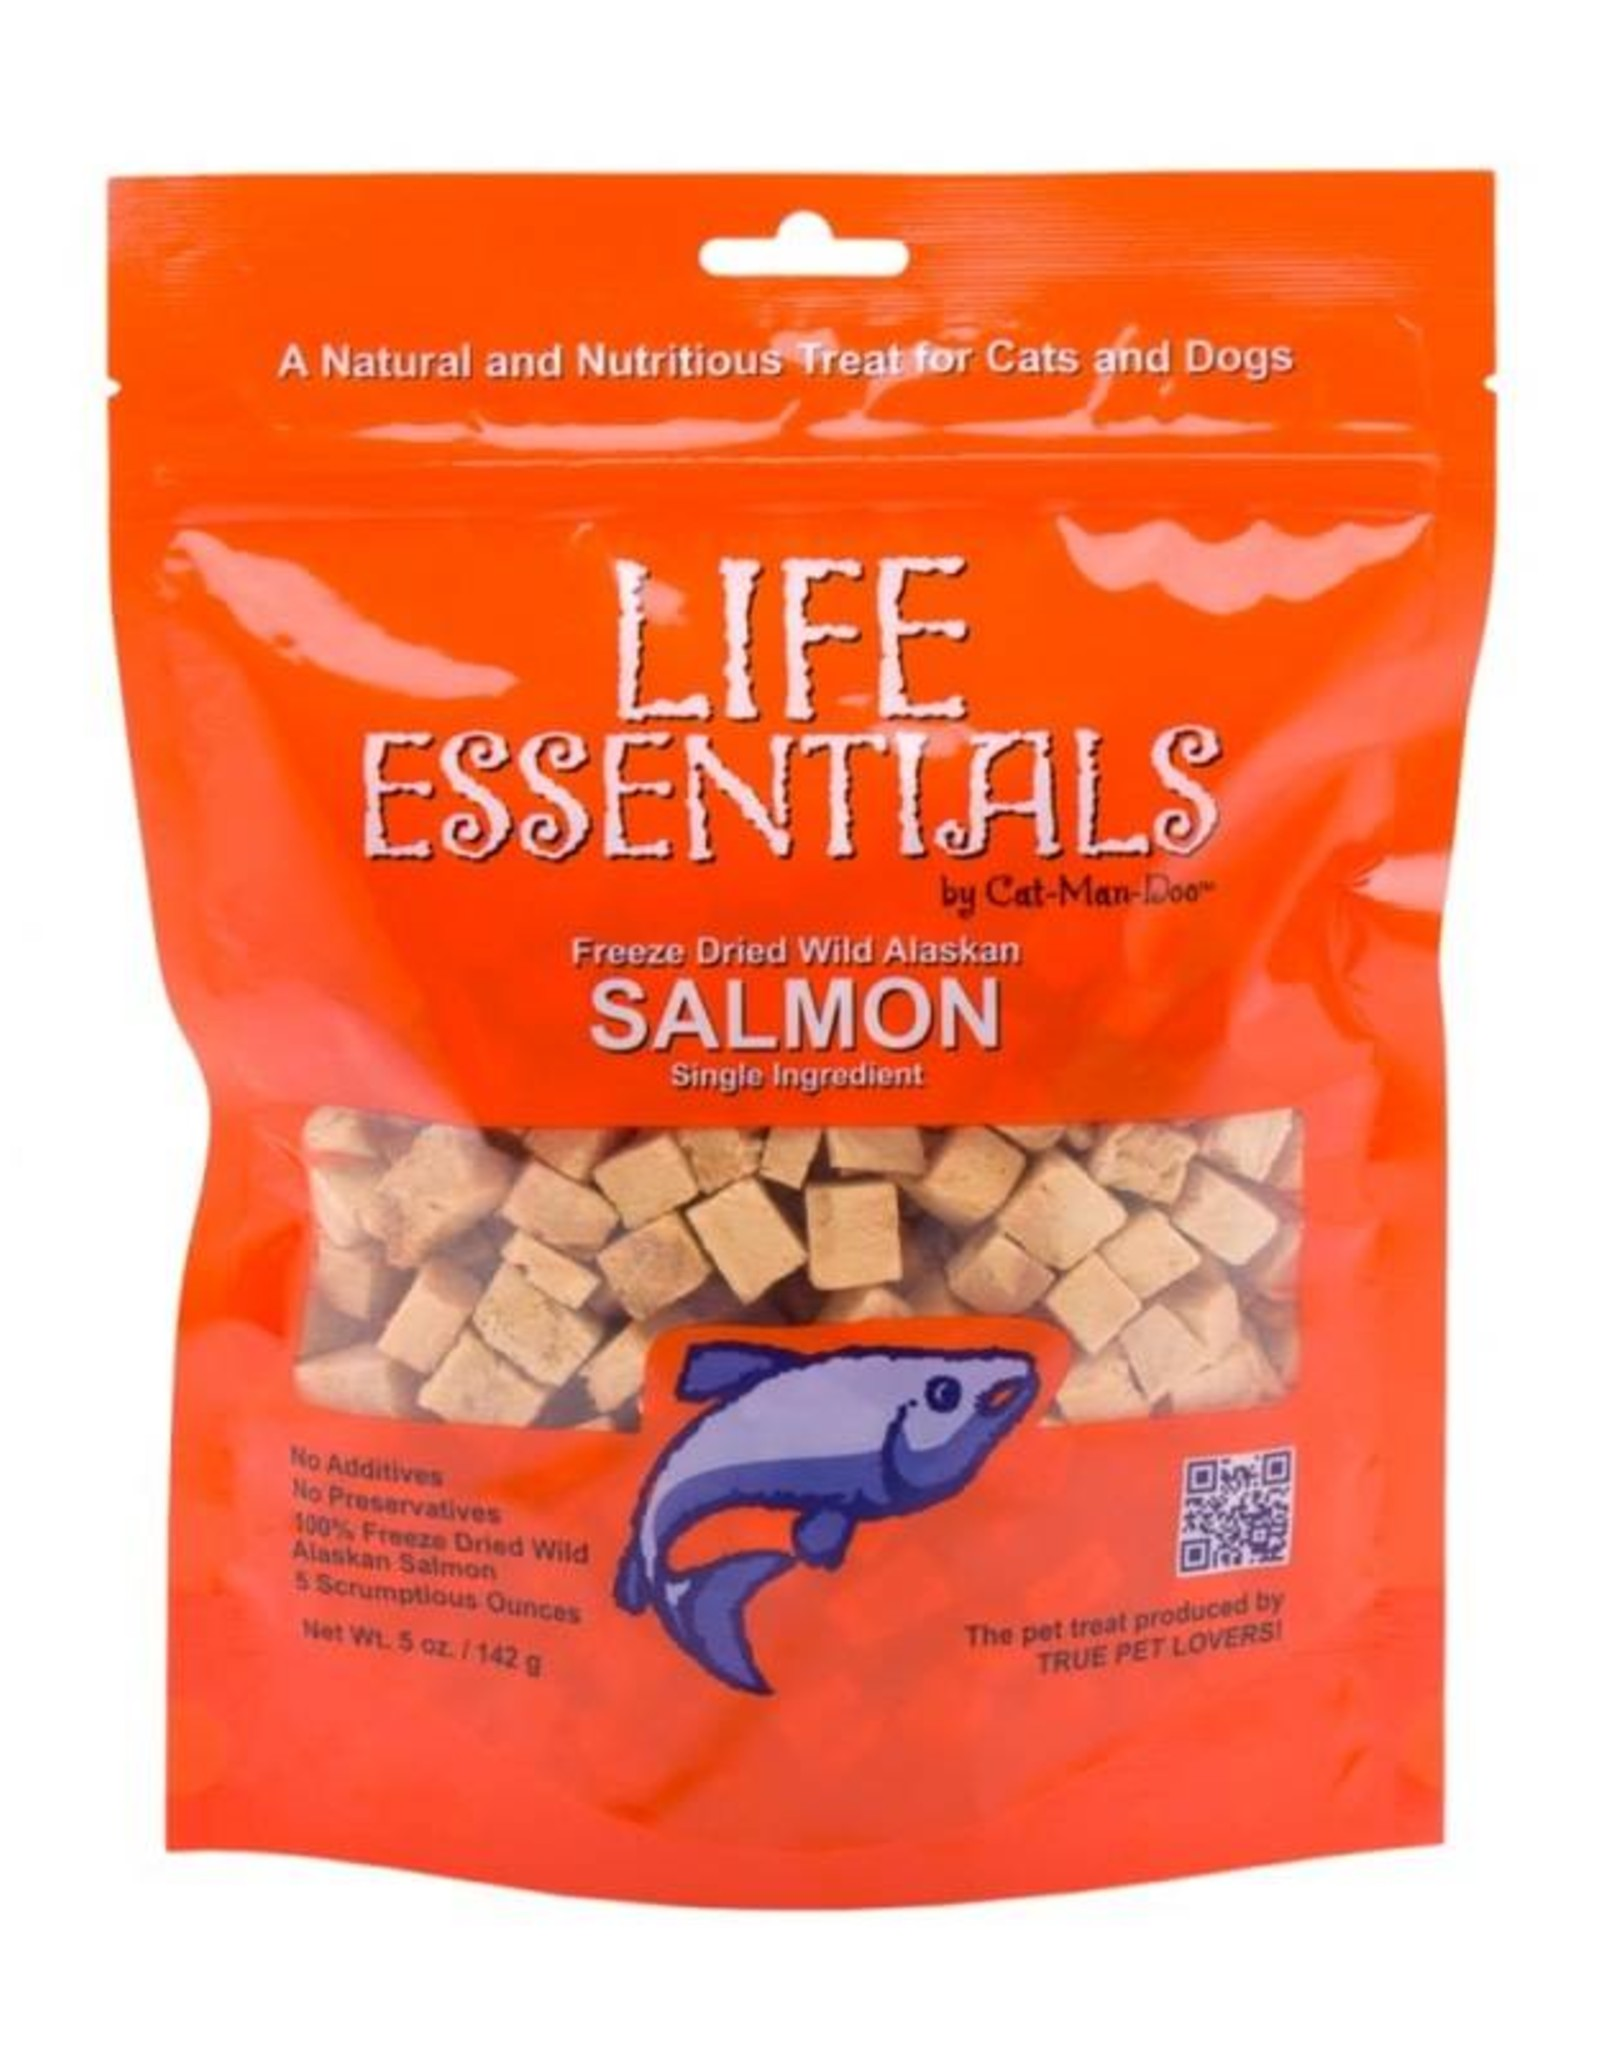 Cat-Man-Doo Life Essentials Freeze Dried Salmon